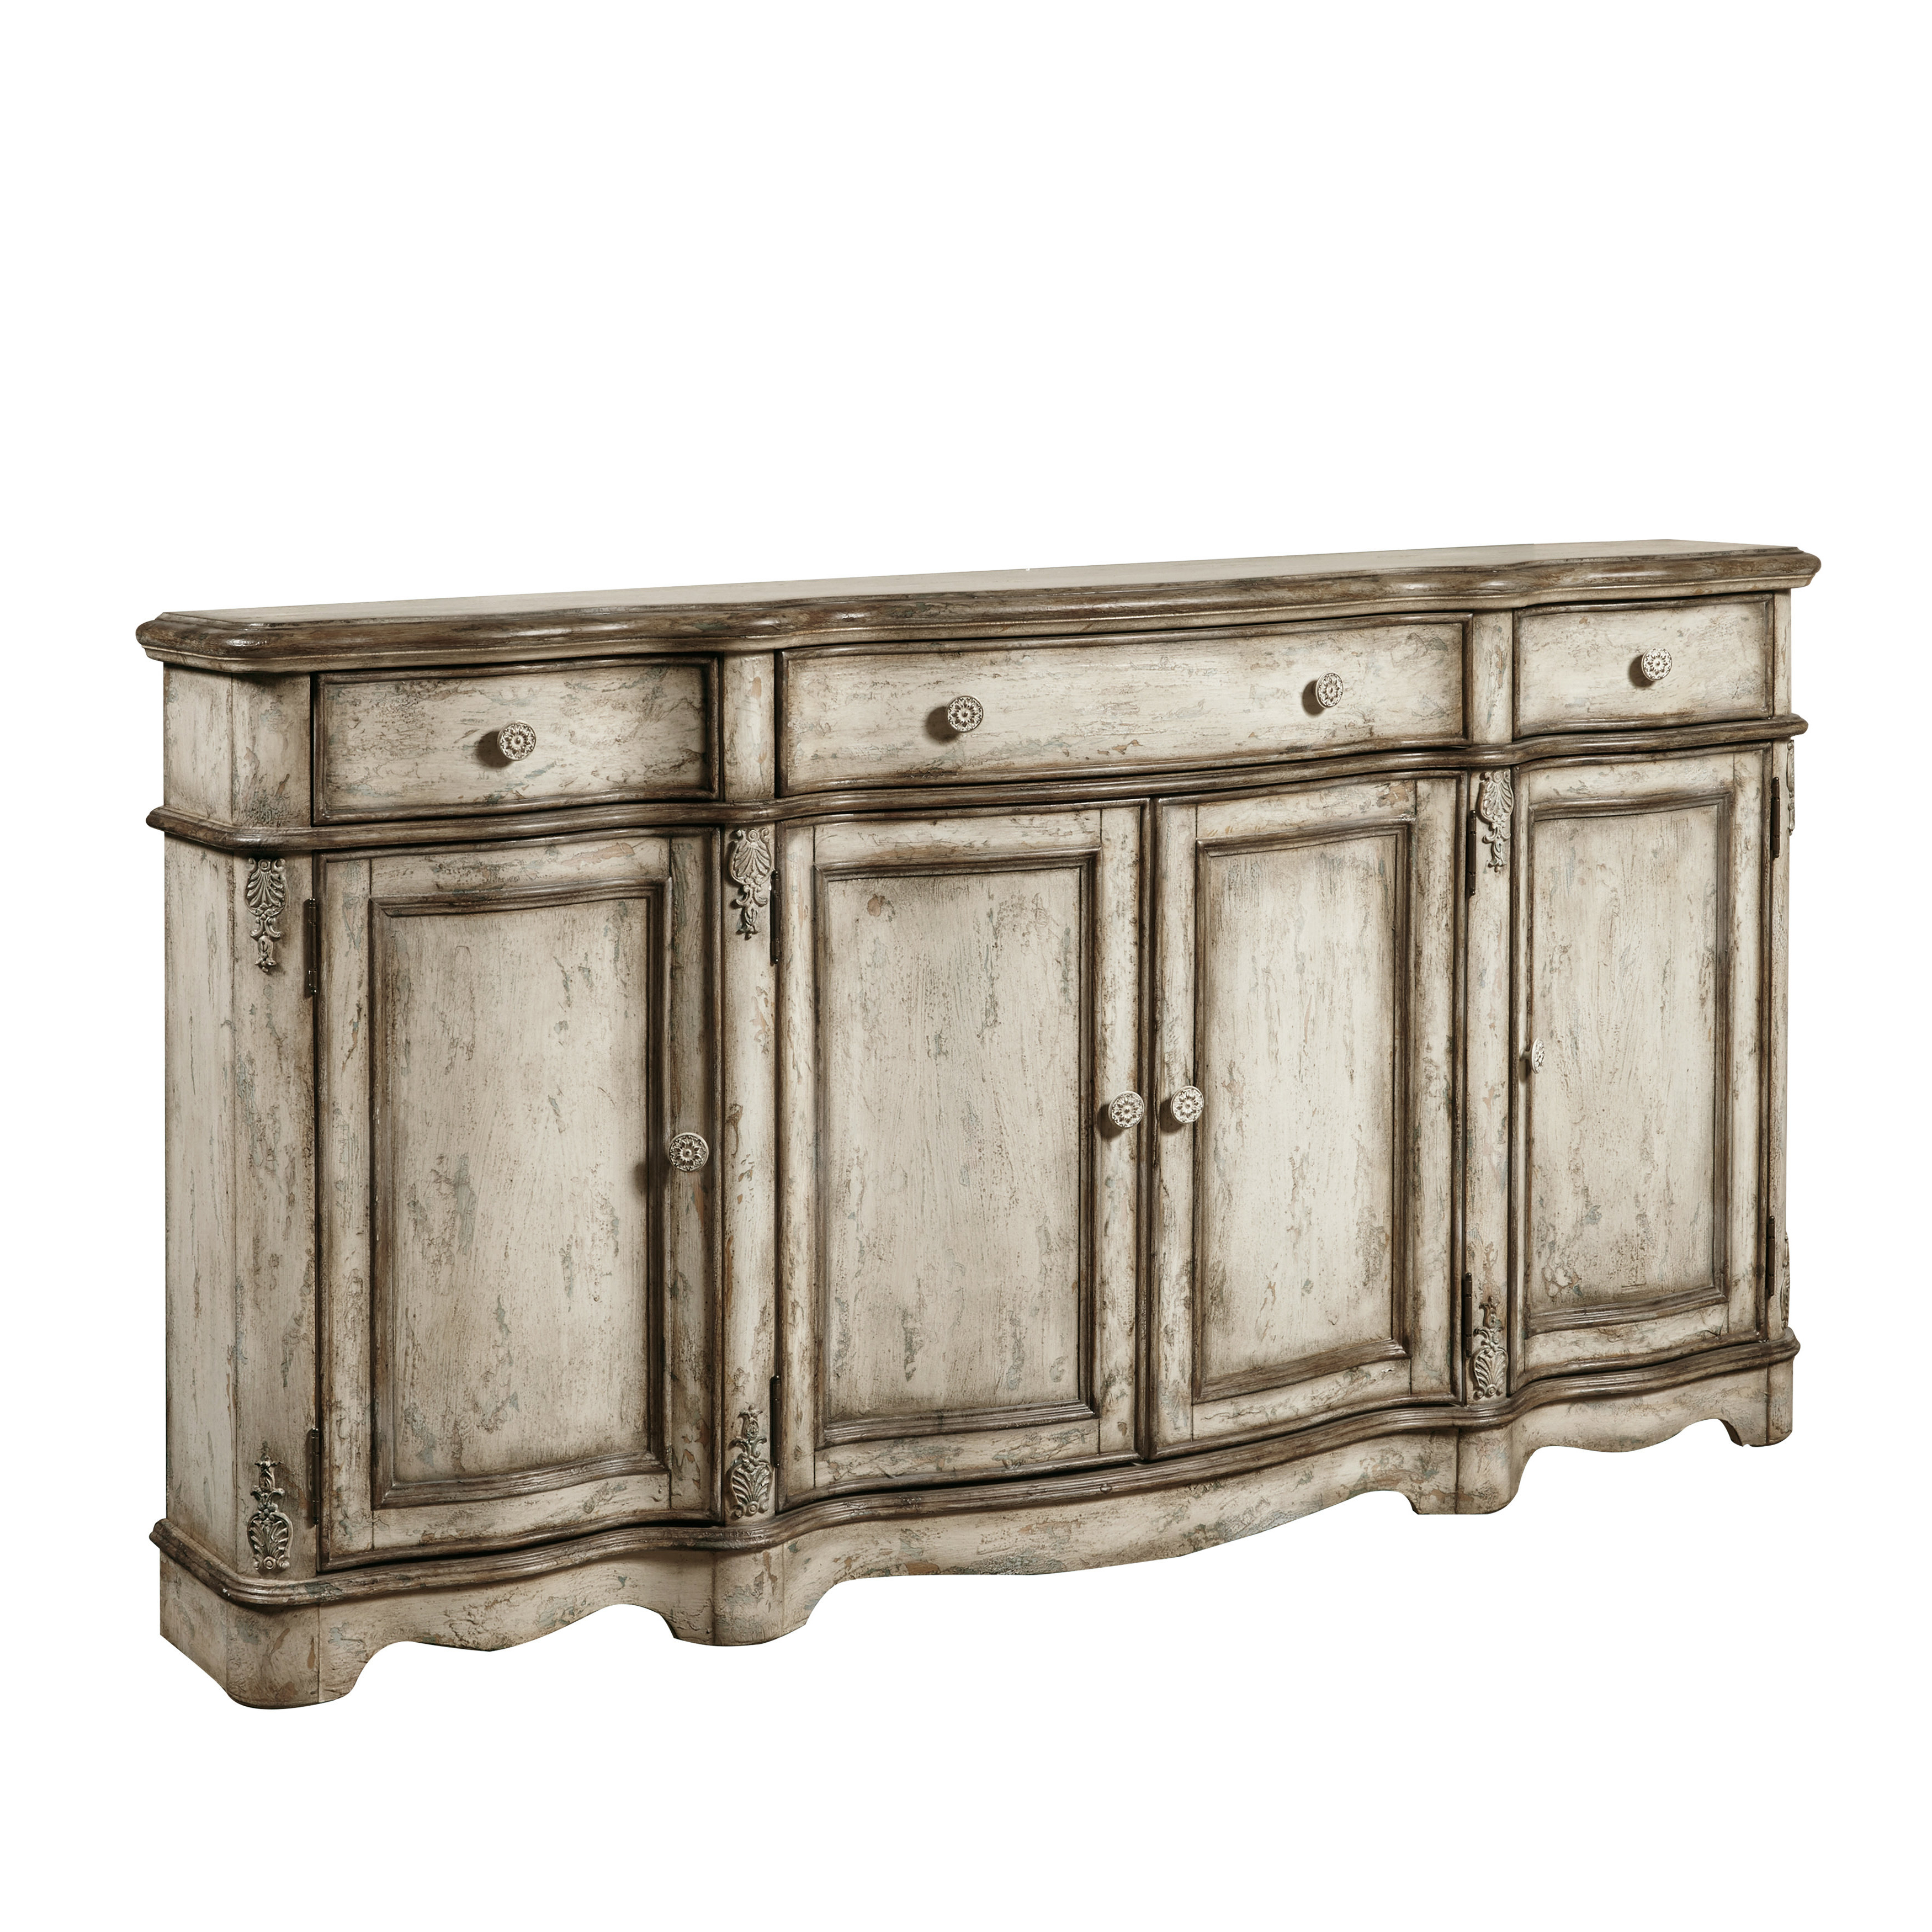 Farmhouse & Rustic Sideboards & Buffets | Birch Lane Throughout Cher Sideboards (View 3 of 20)